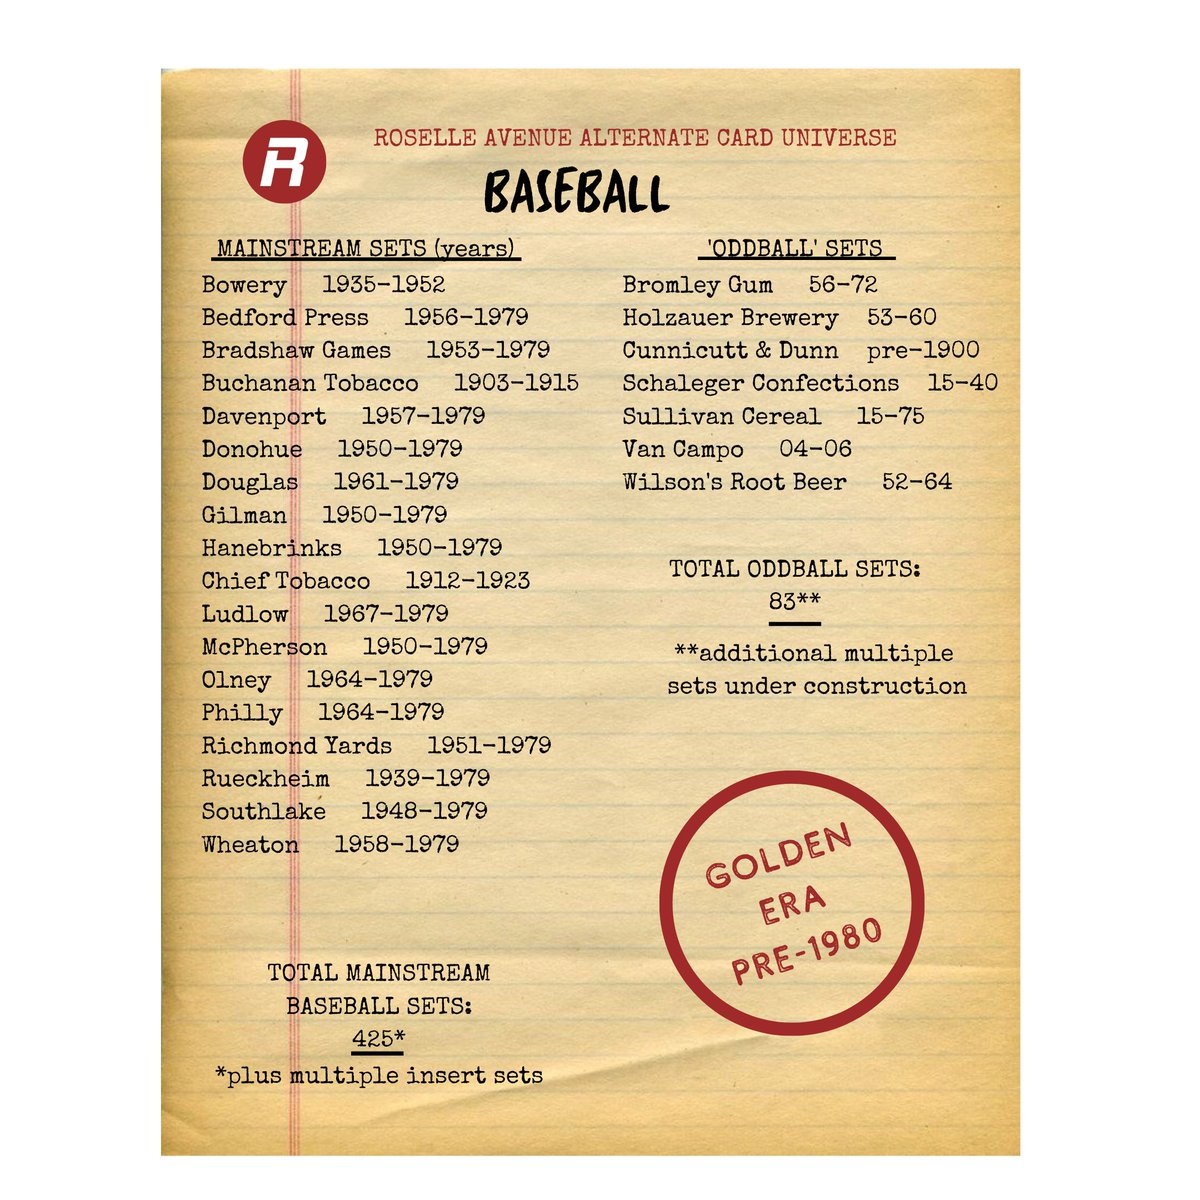 Ready for the Roselle Avenue Alternate Card Universe? 😀  25+ brands, 450+ baseball sets 😮  Get a feel for the brands and years below, and I'll start rolling out the original custom designs and cards later this week. Here's to a whole different card history 😎👍 @DeeNoOne2U https://t.co/wwSb1ohtBy